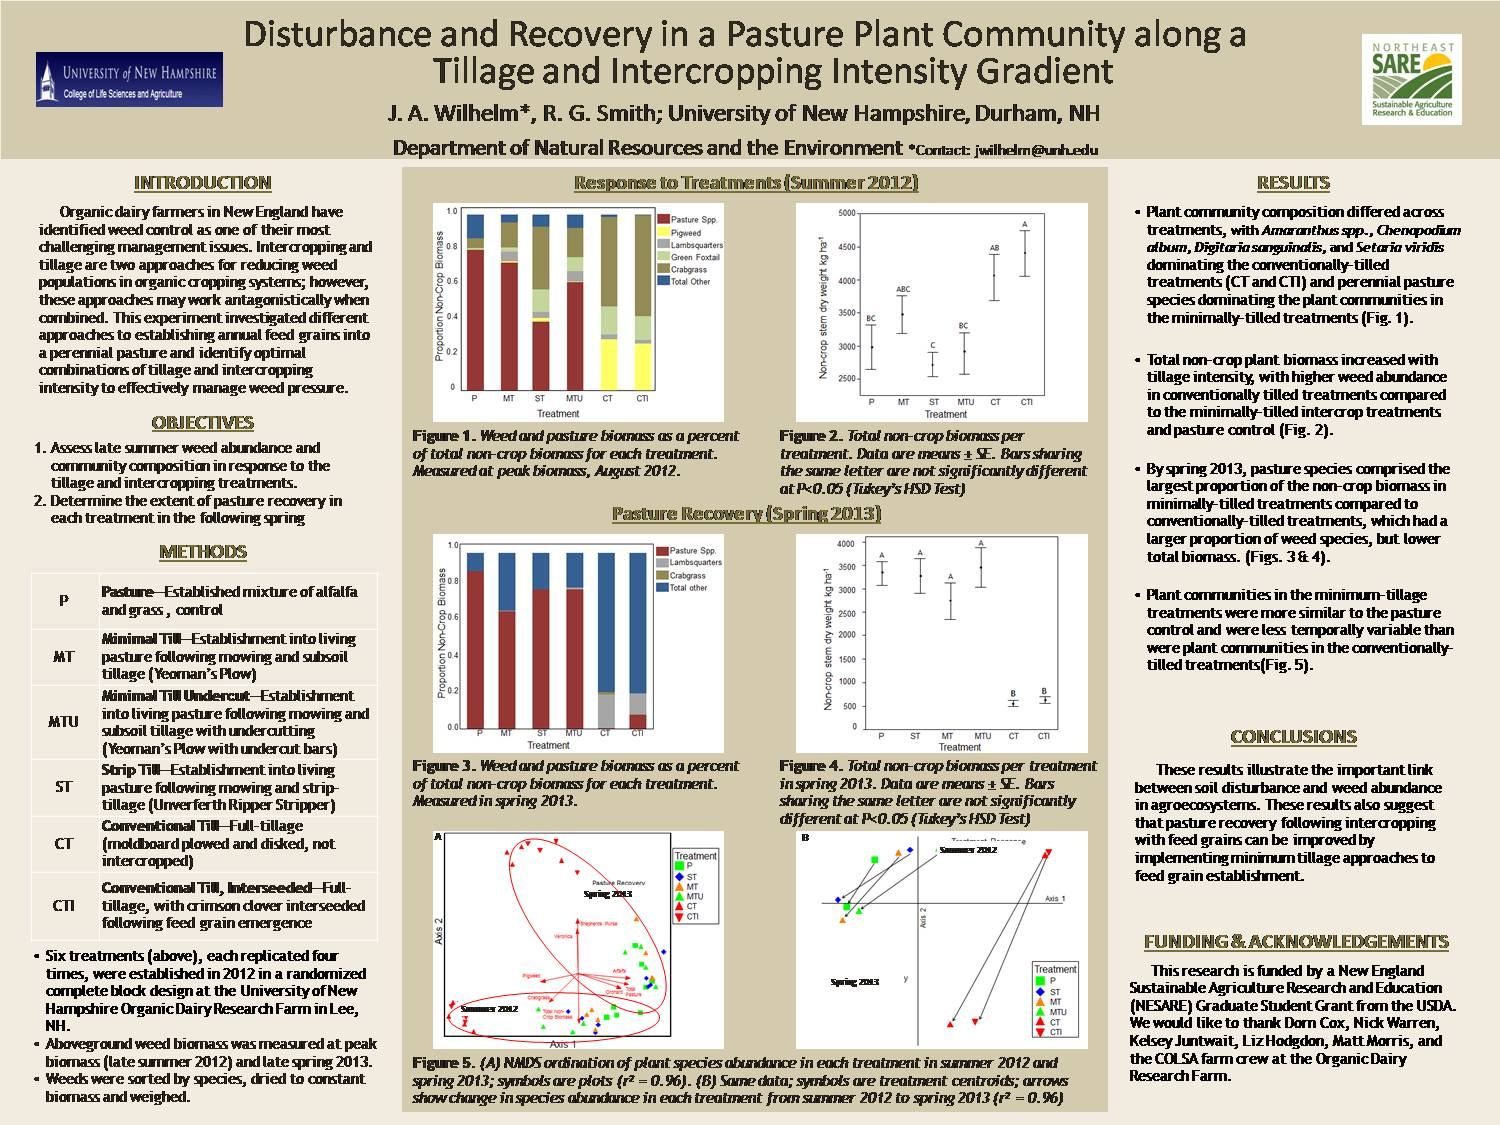 Disturbance And Recovery In A Pasture Plant Community Along A Tillage And Intercropping Intensity Gradient  by jwilhelm